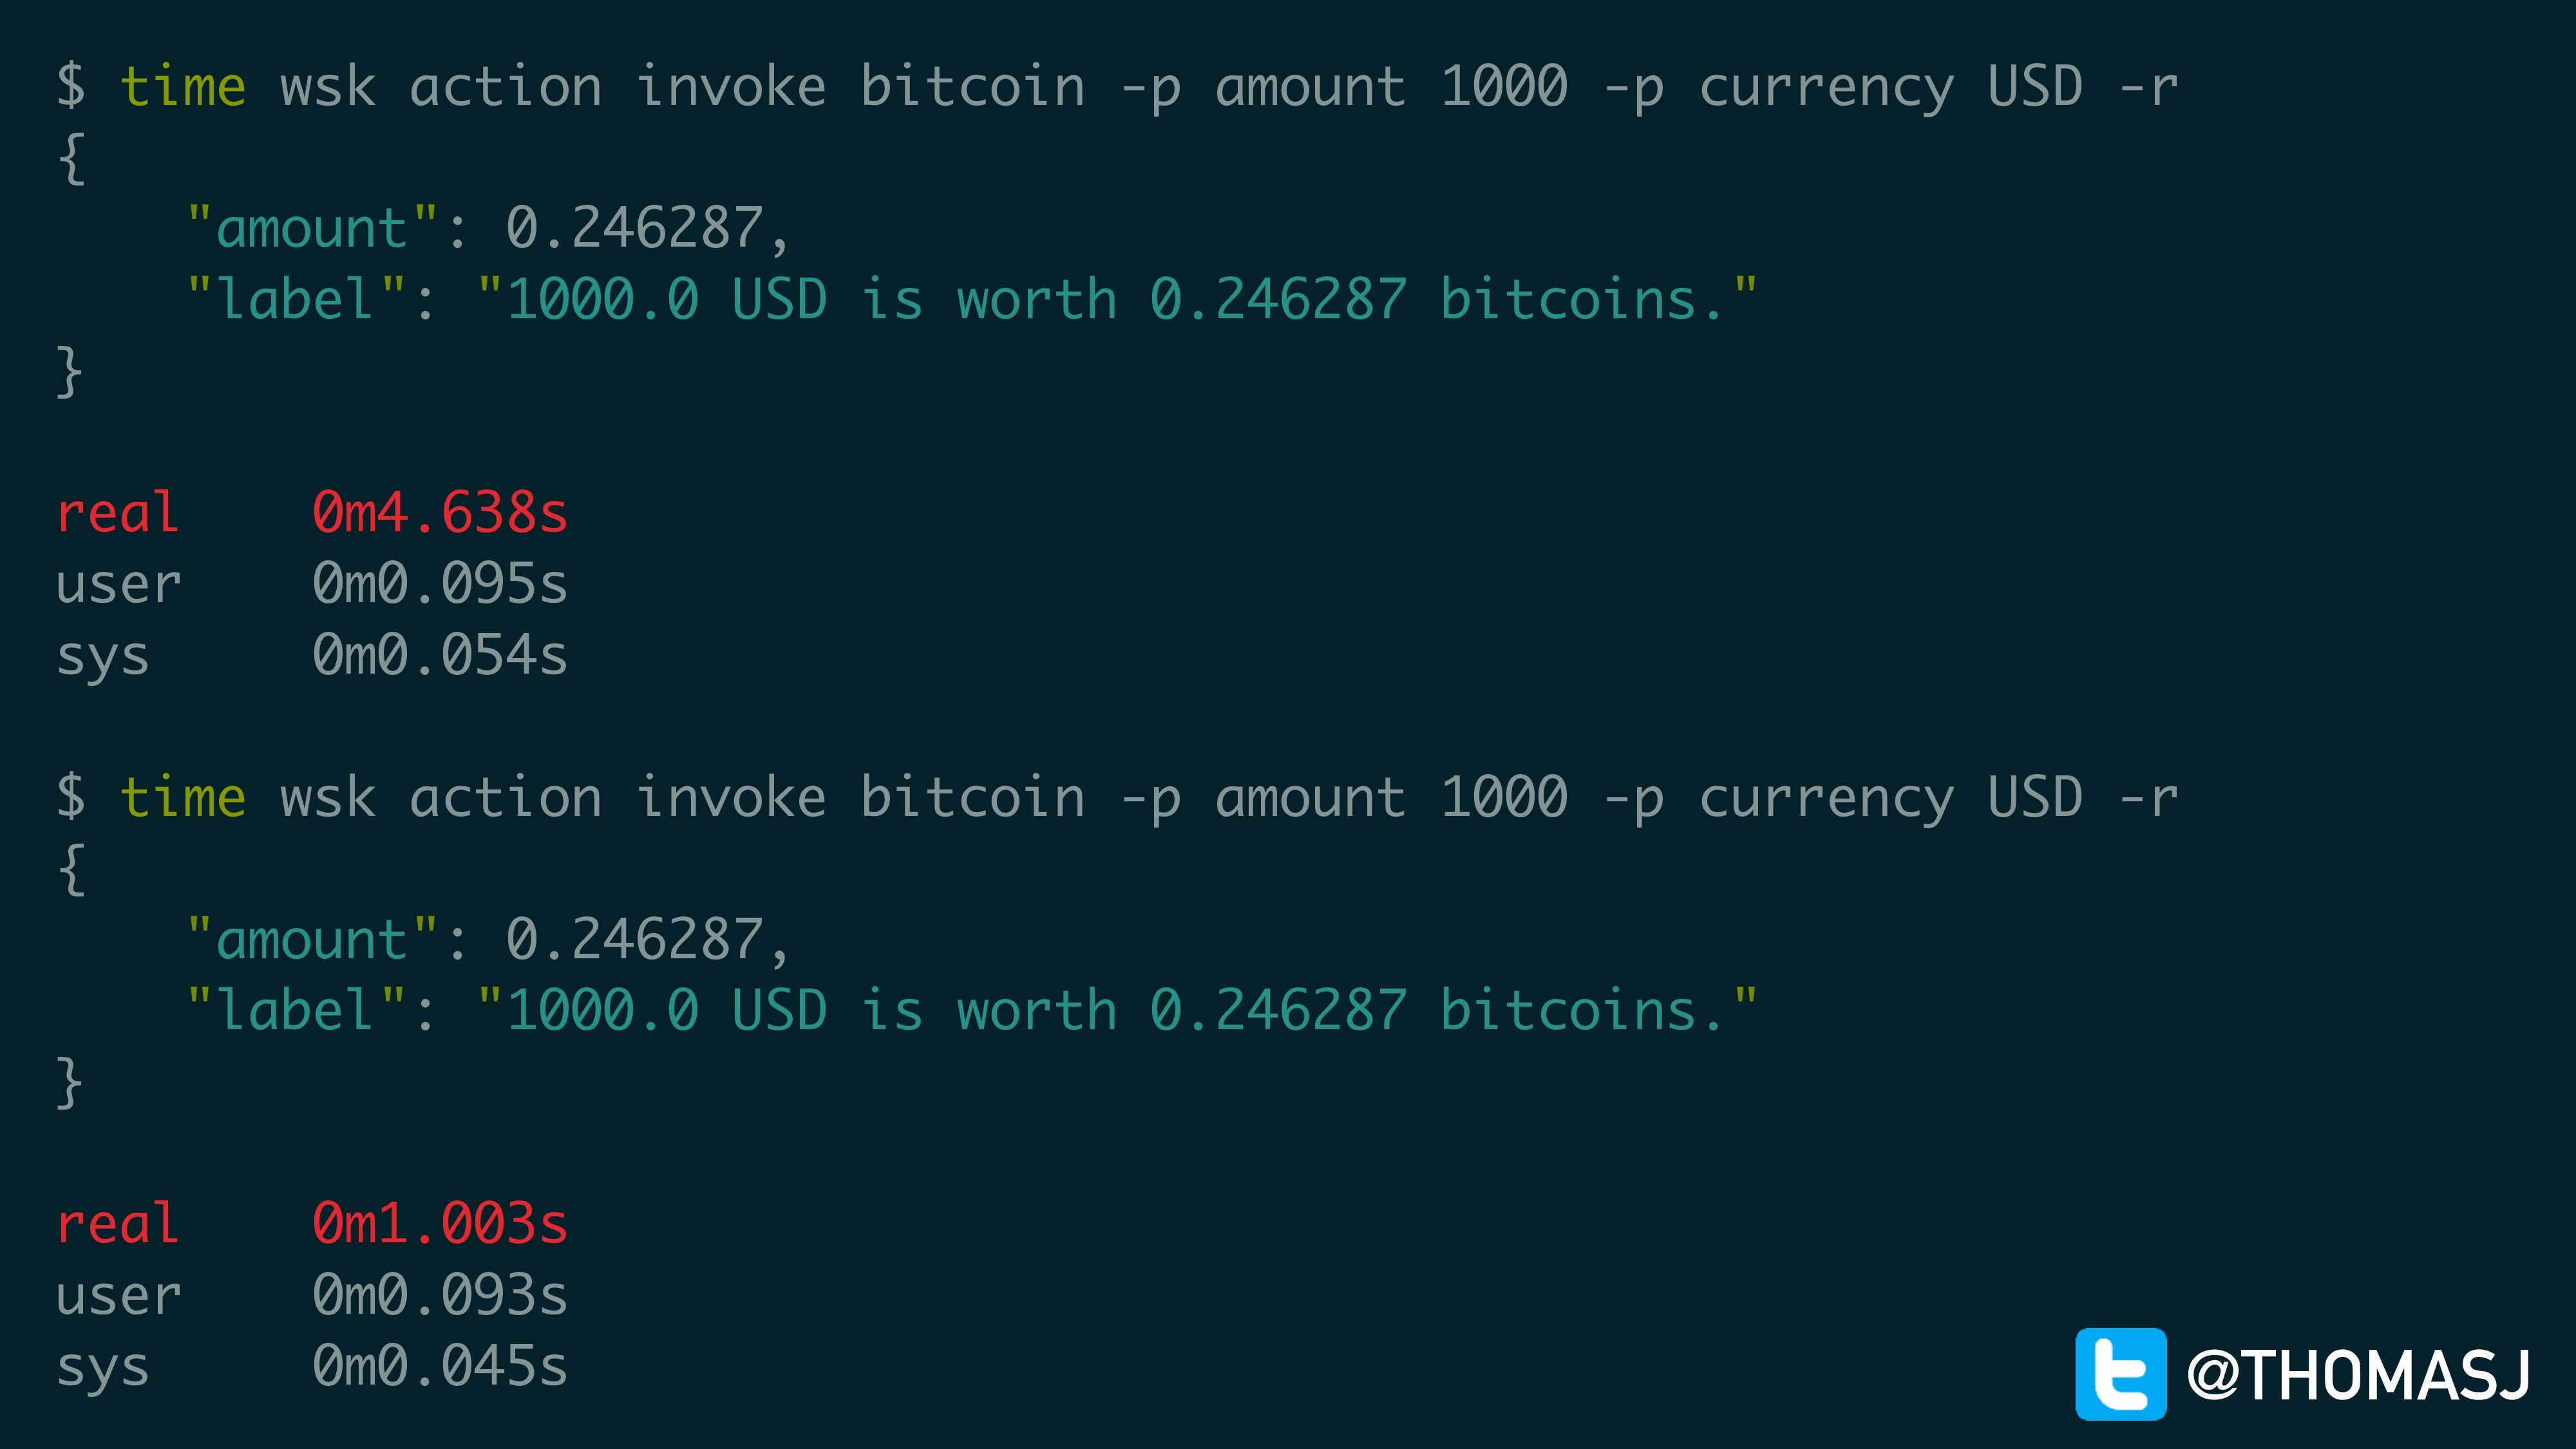 $ time wsk action invoke bitcoin -p amount 1000...